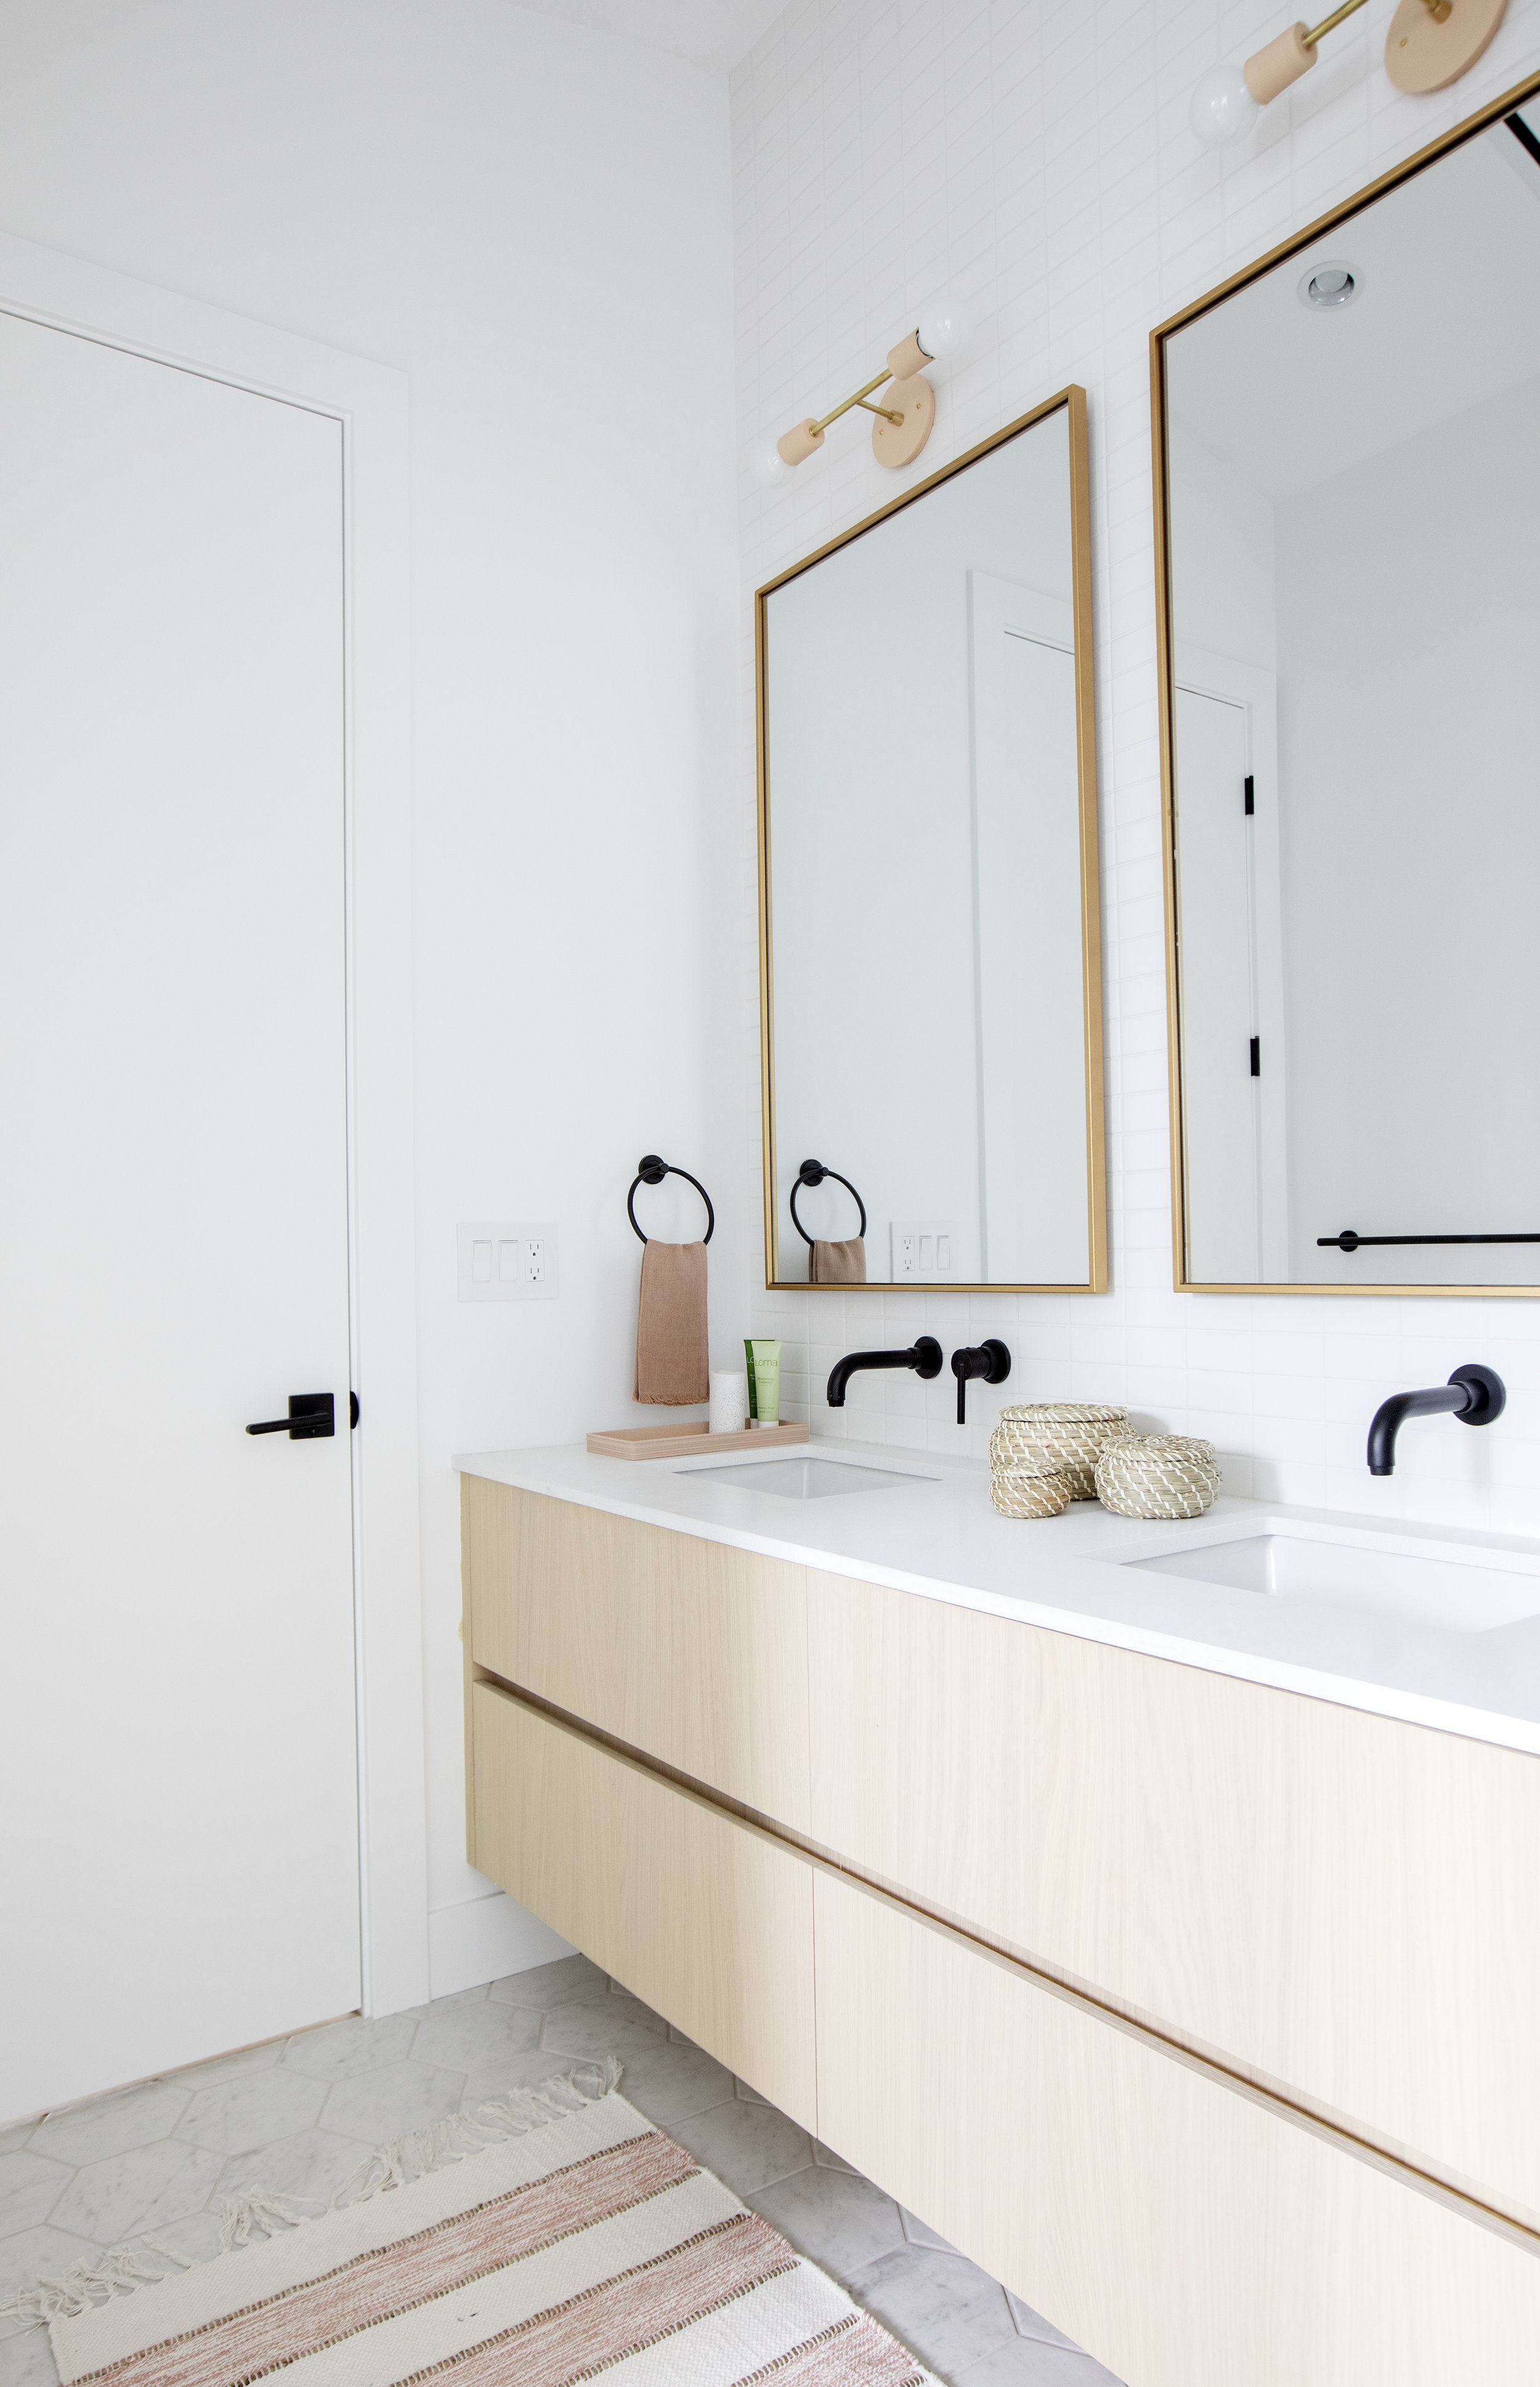 A bathroom in East 13th street, complete with double sinks and large rectangular mirrors.